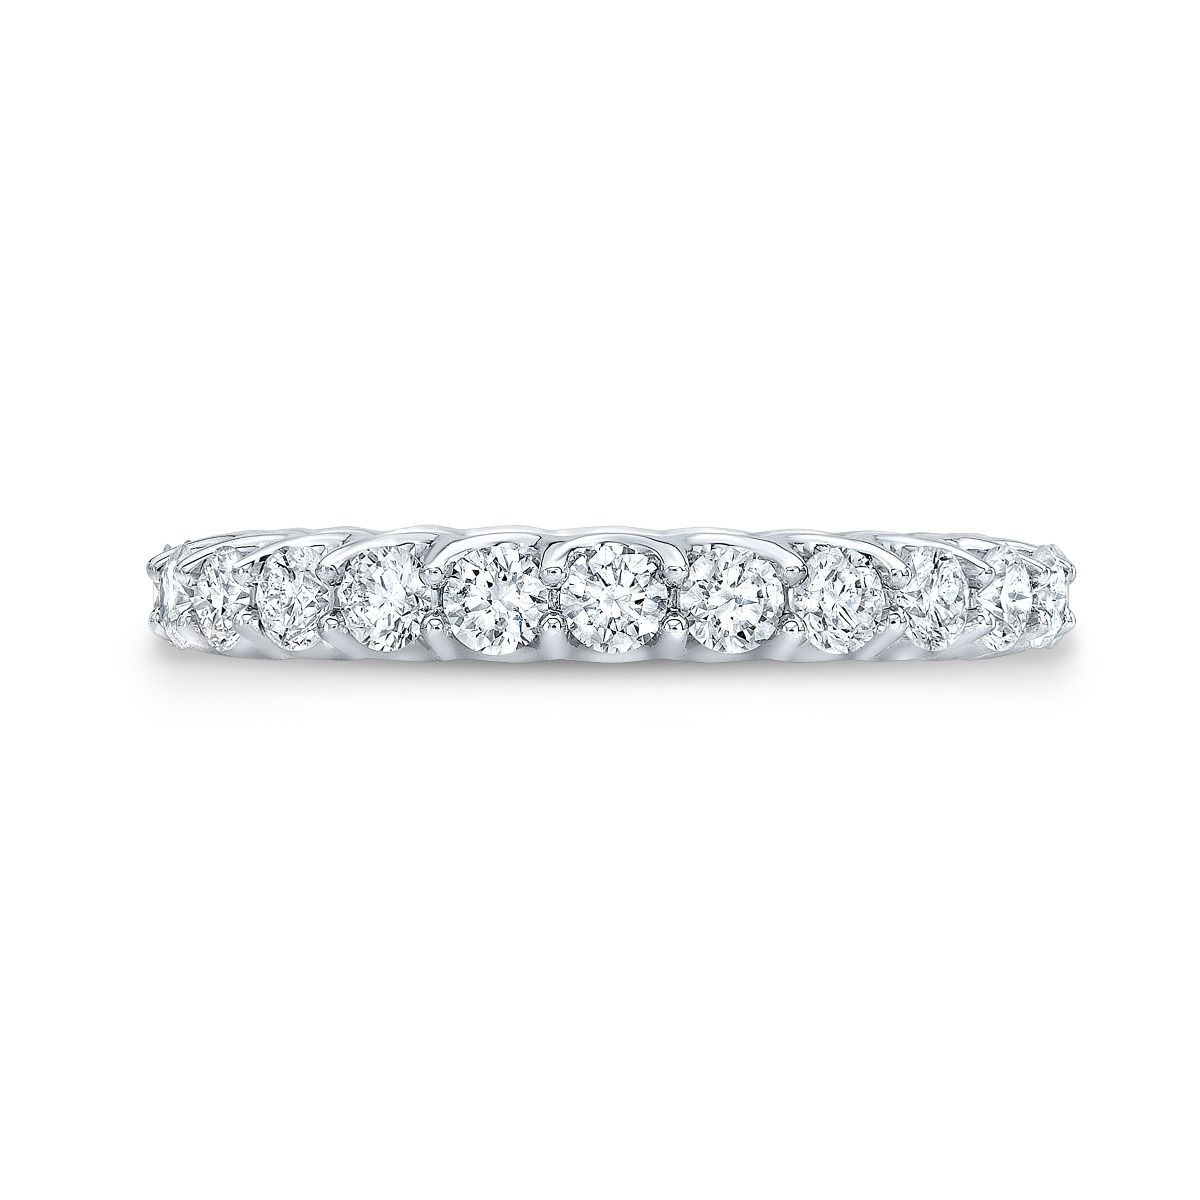 Round Eternity Ring In White Gold with Shared Prongs